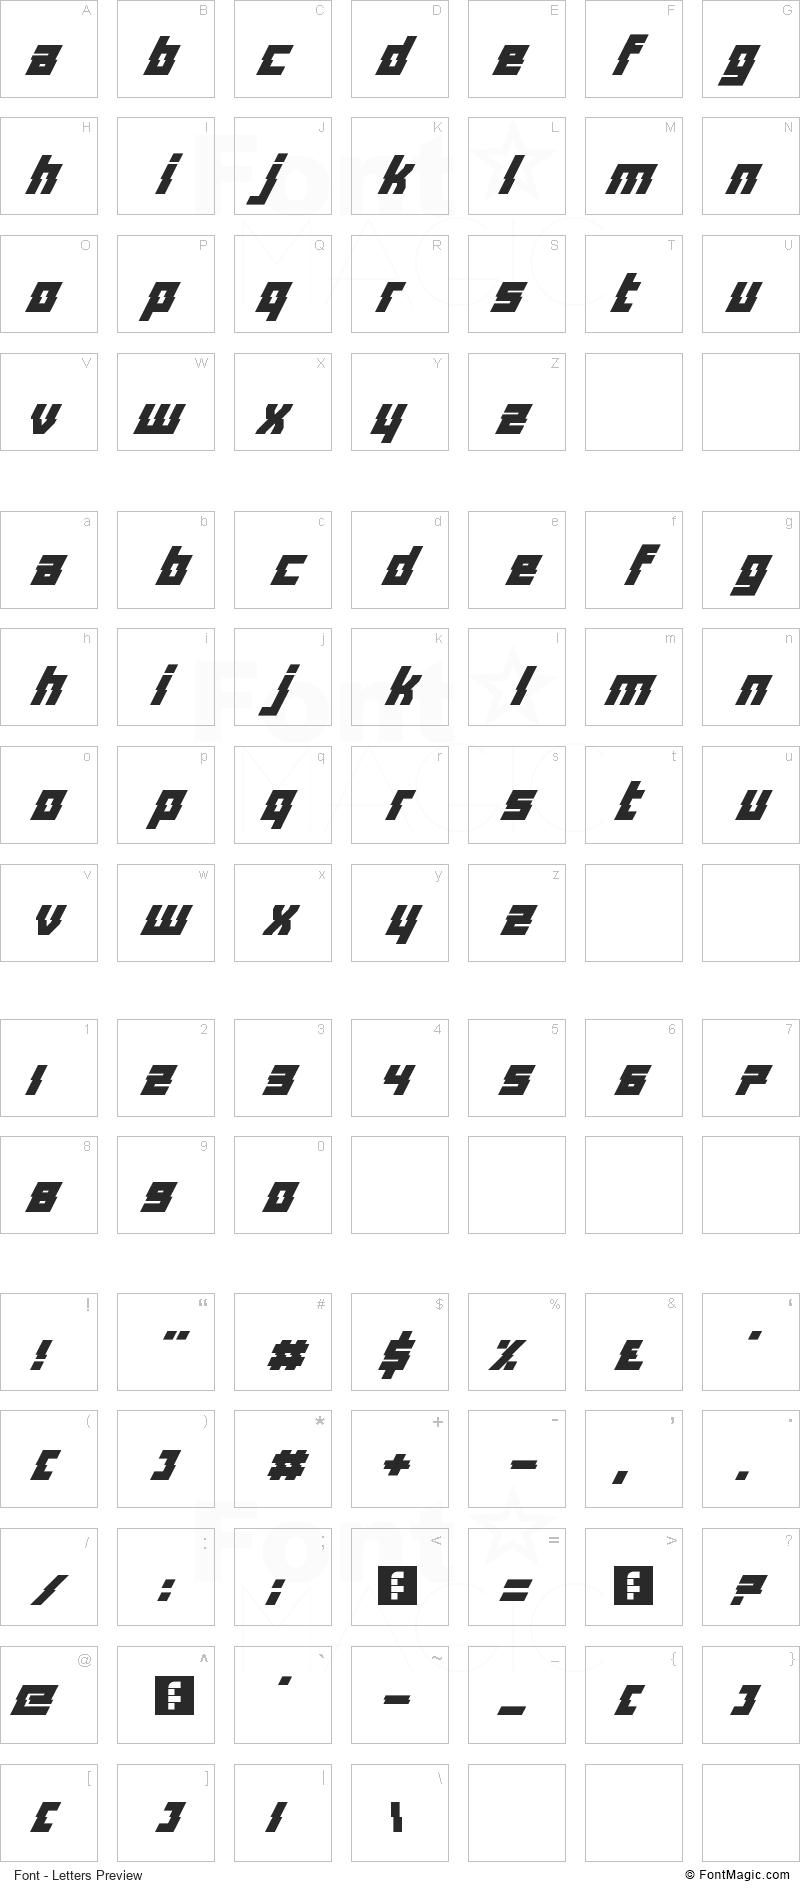 Distortion Of The Brain And Mind Font - All Latters Preview Chart